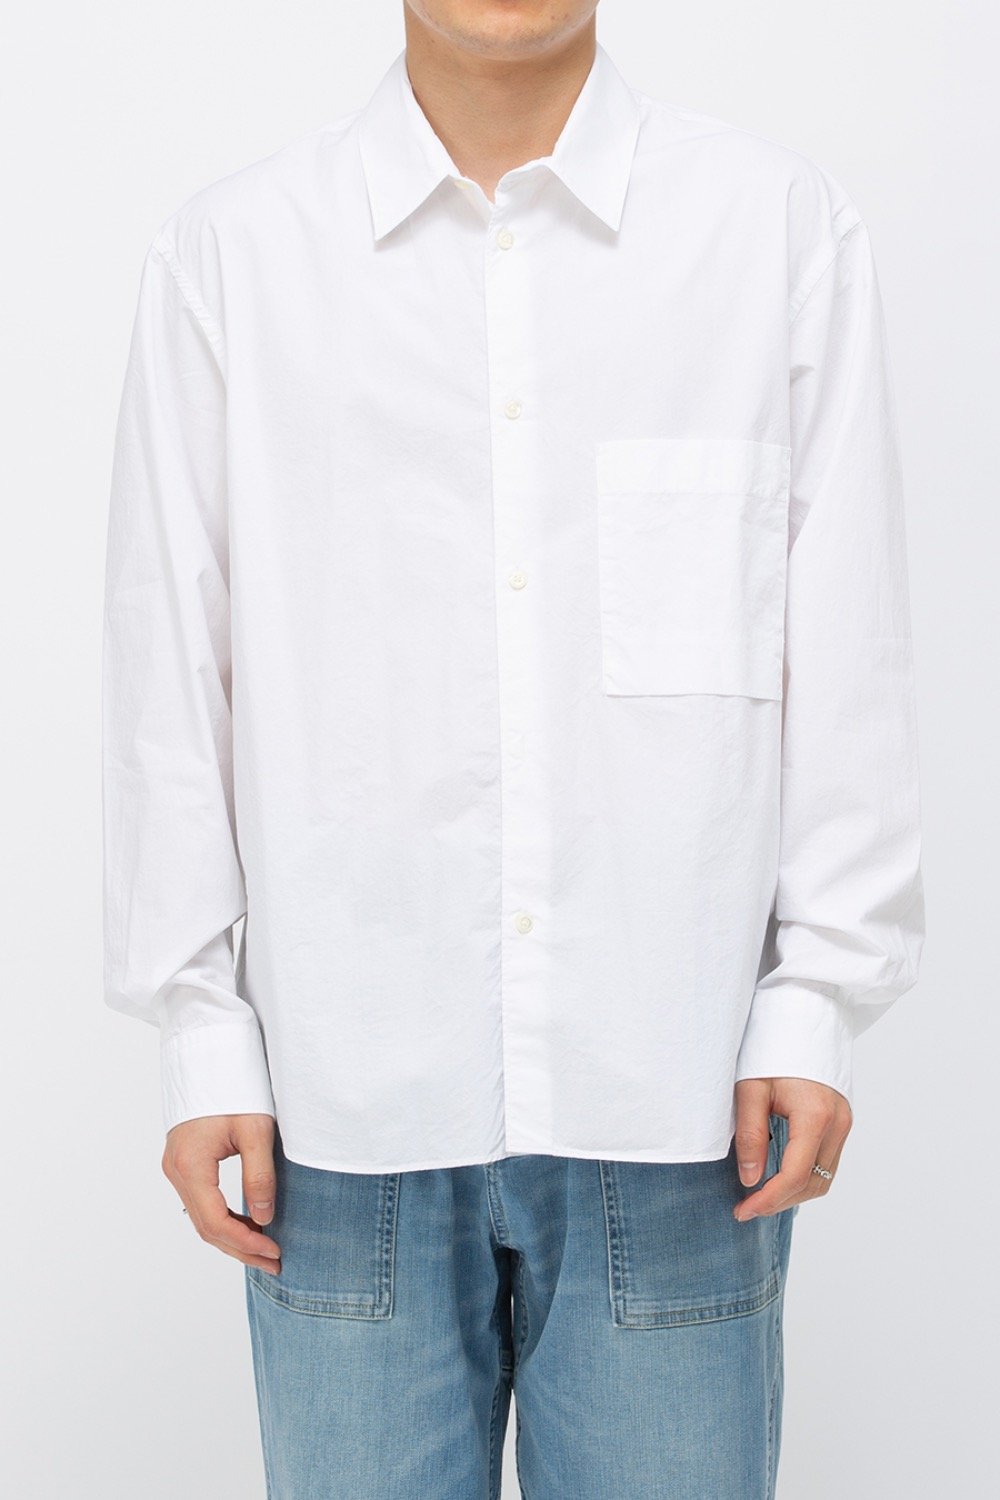 LOGO LABEL SHIRT OFF WHITE